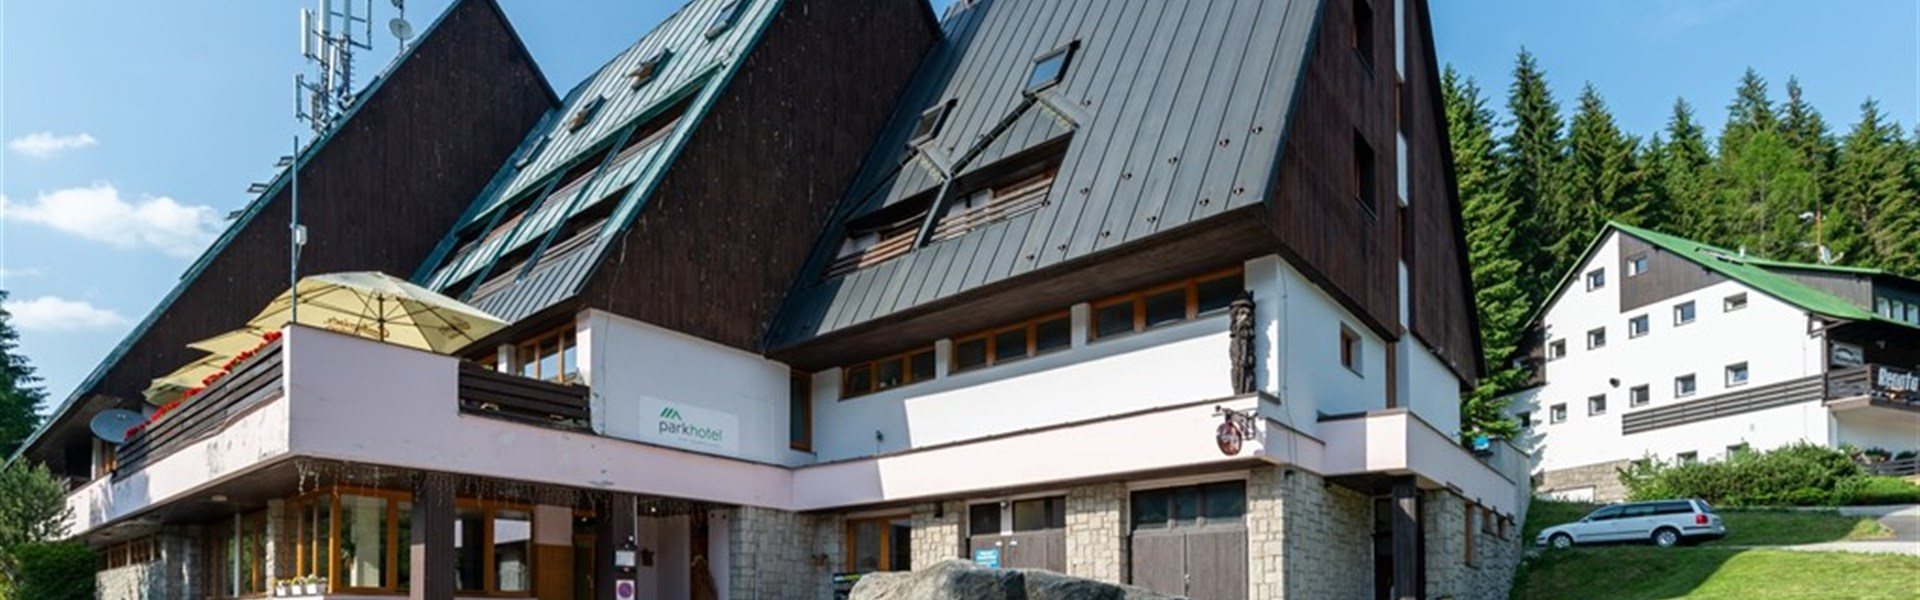 Marco Polo - Parkhotel Harrachov -